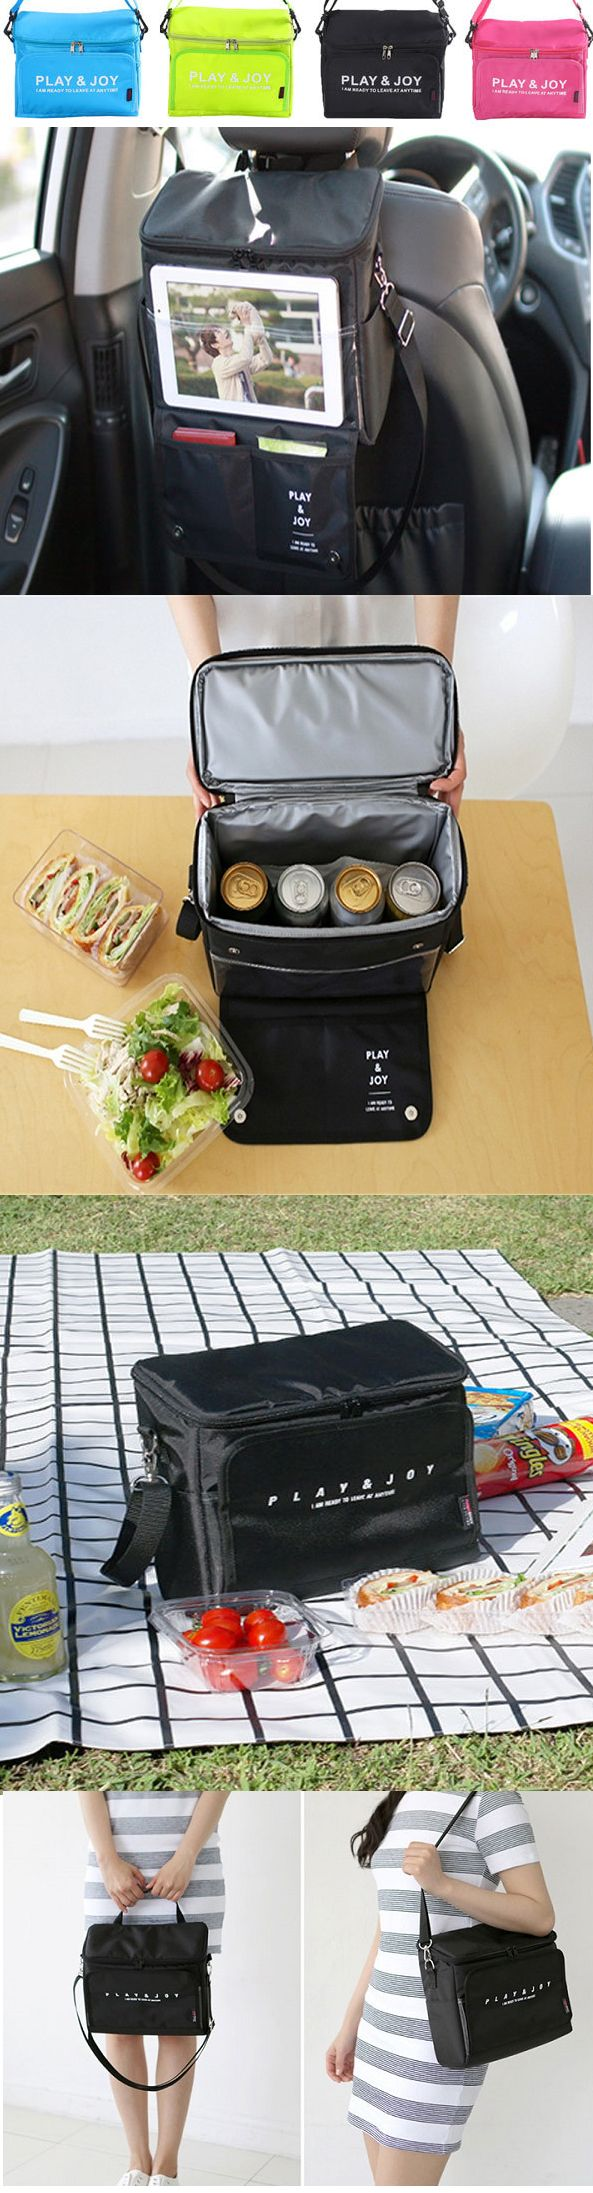 US$11.59 Multifuctional Car Seat Storage Bag Heat Preservation Pinic Bag Food Outdoors Container